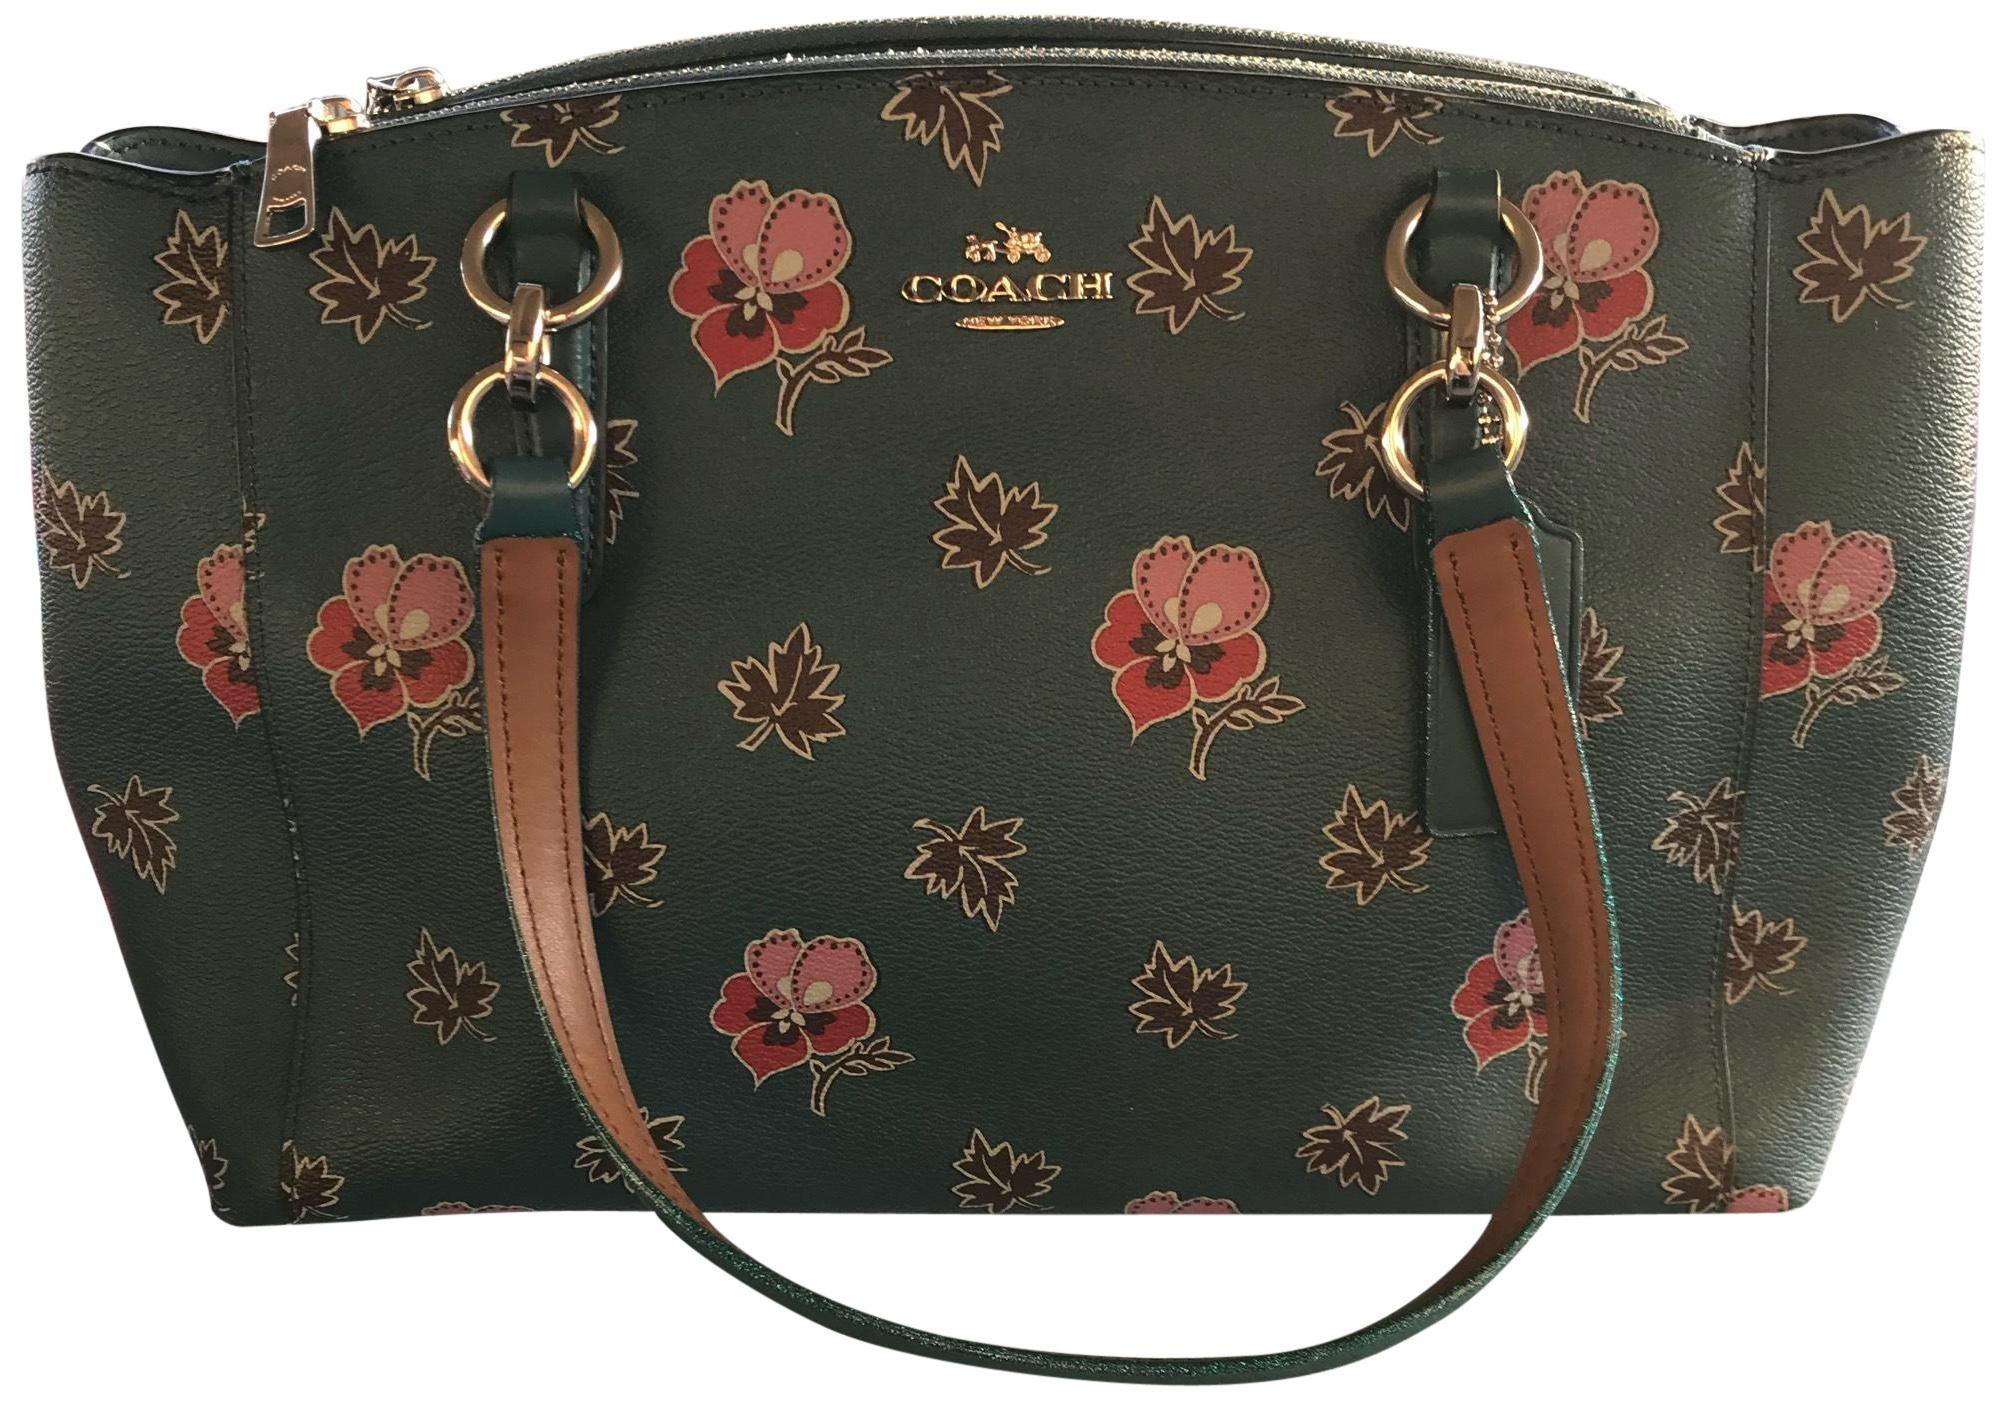 Coach Blue/Floral Leather Shoulder Bag - Tradesy